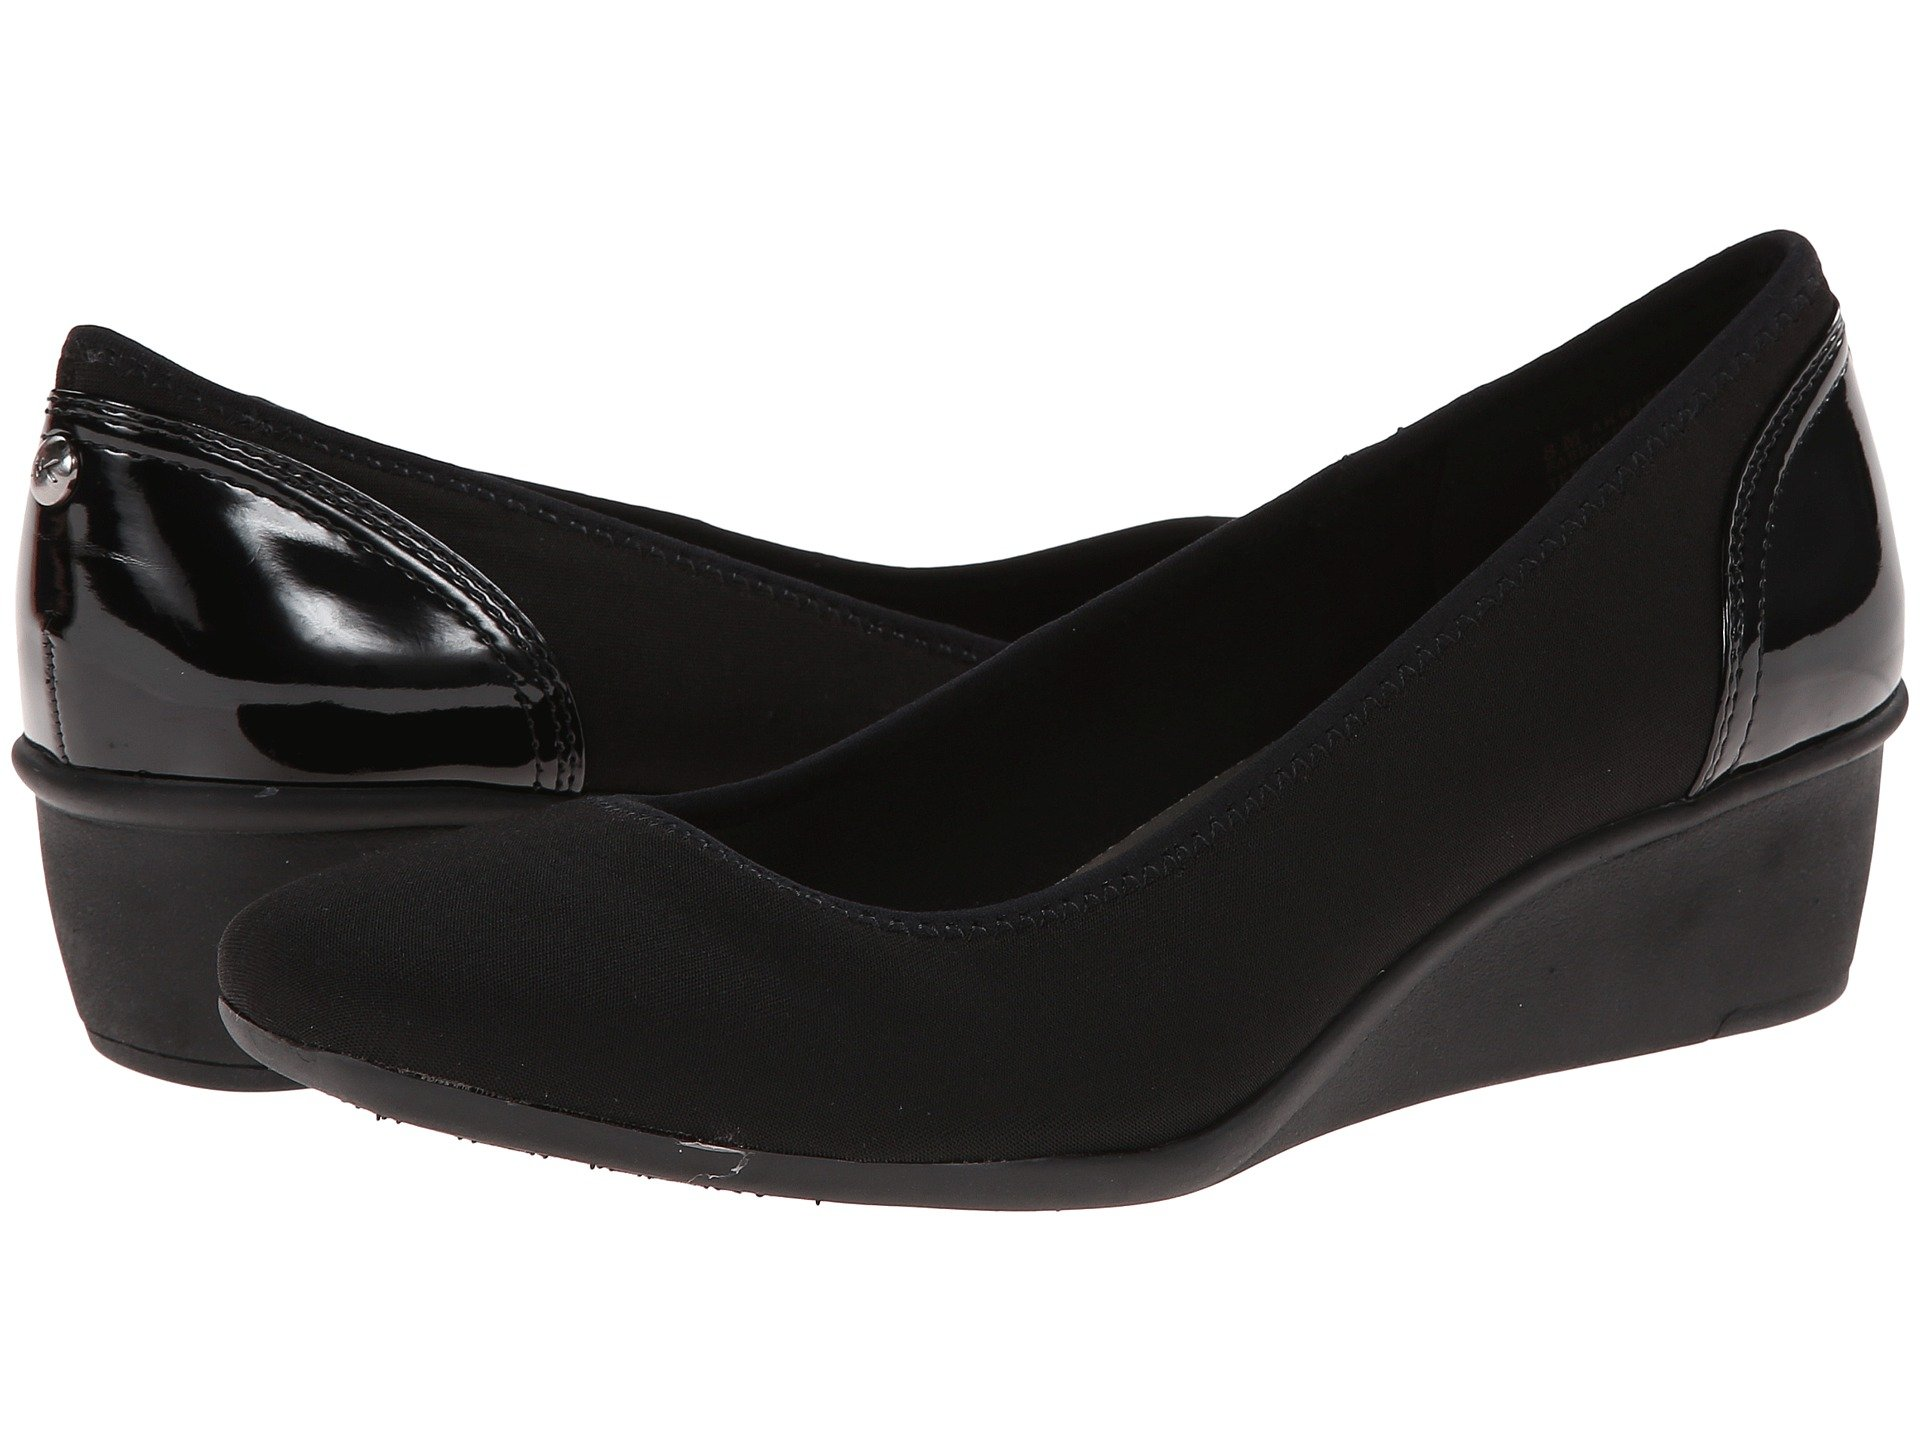 31f02ae5bfcba Women's Anne Klein Shoes + FREE SHIPPING | Zappos.com